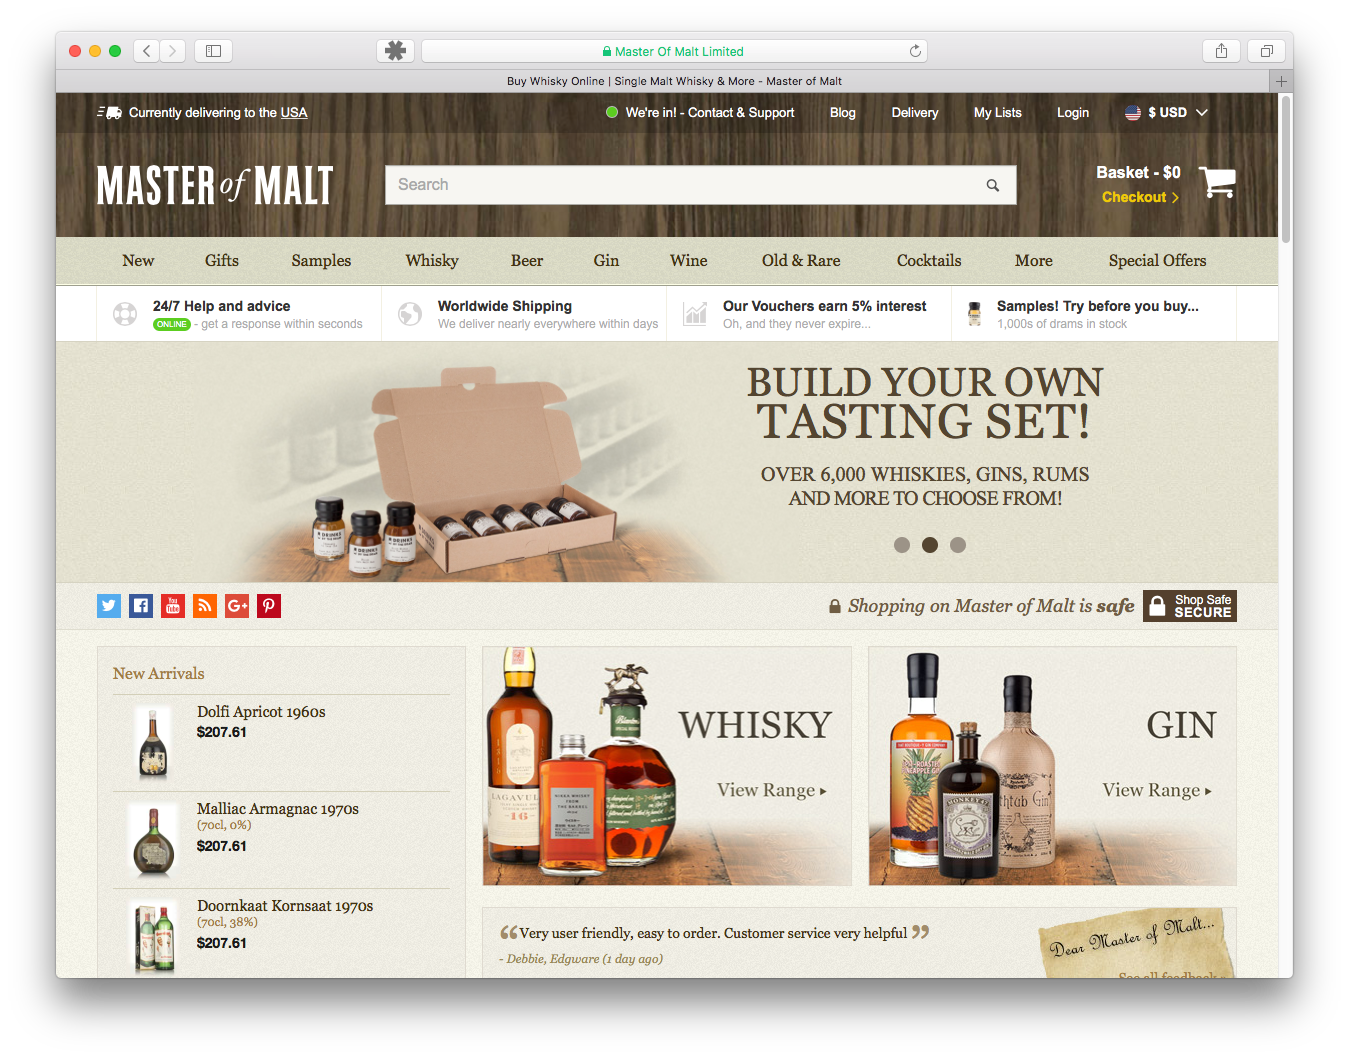 MAster of Malt Home Page